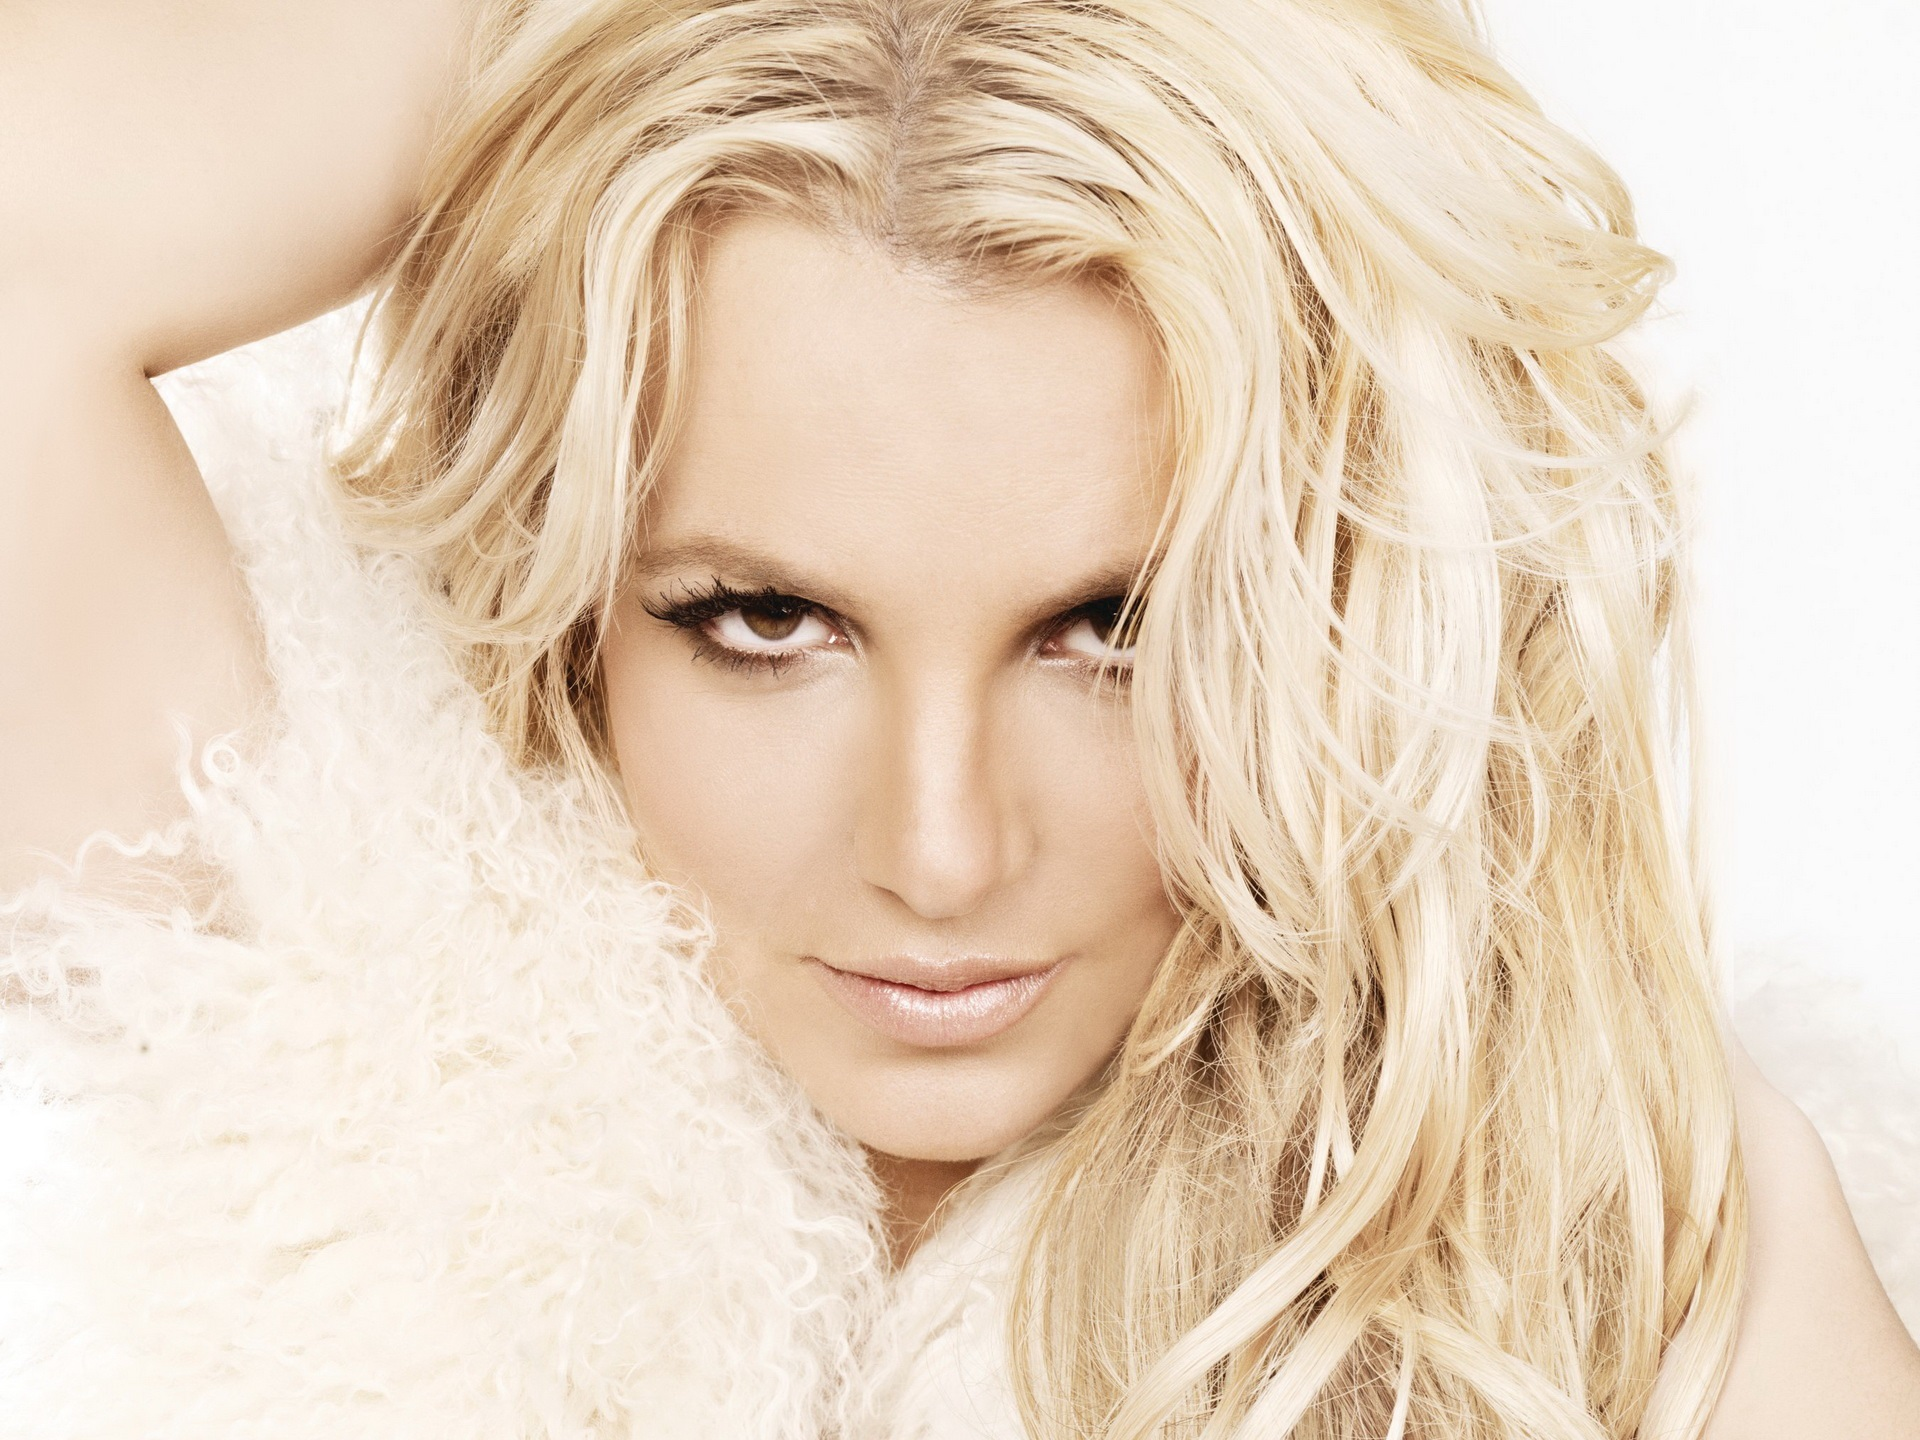 Britney Spears Wallpaper 1